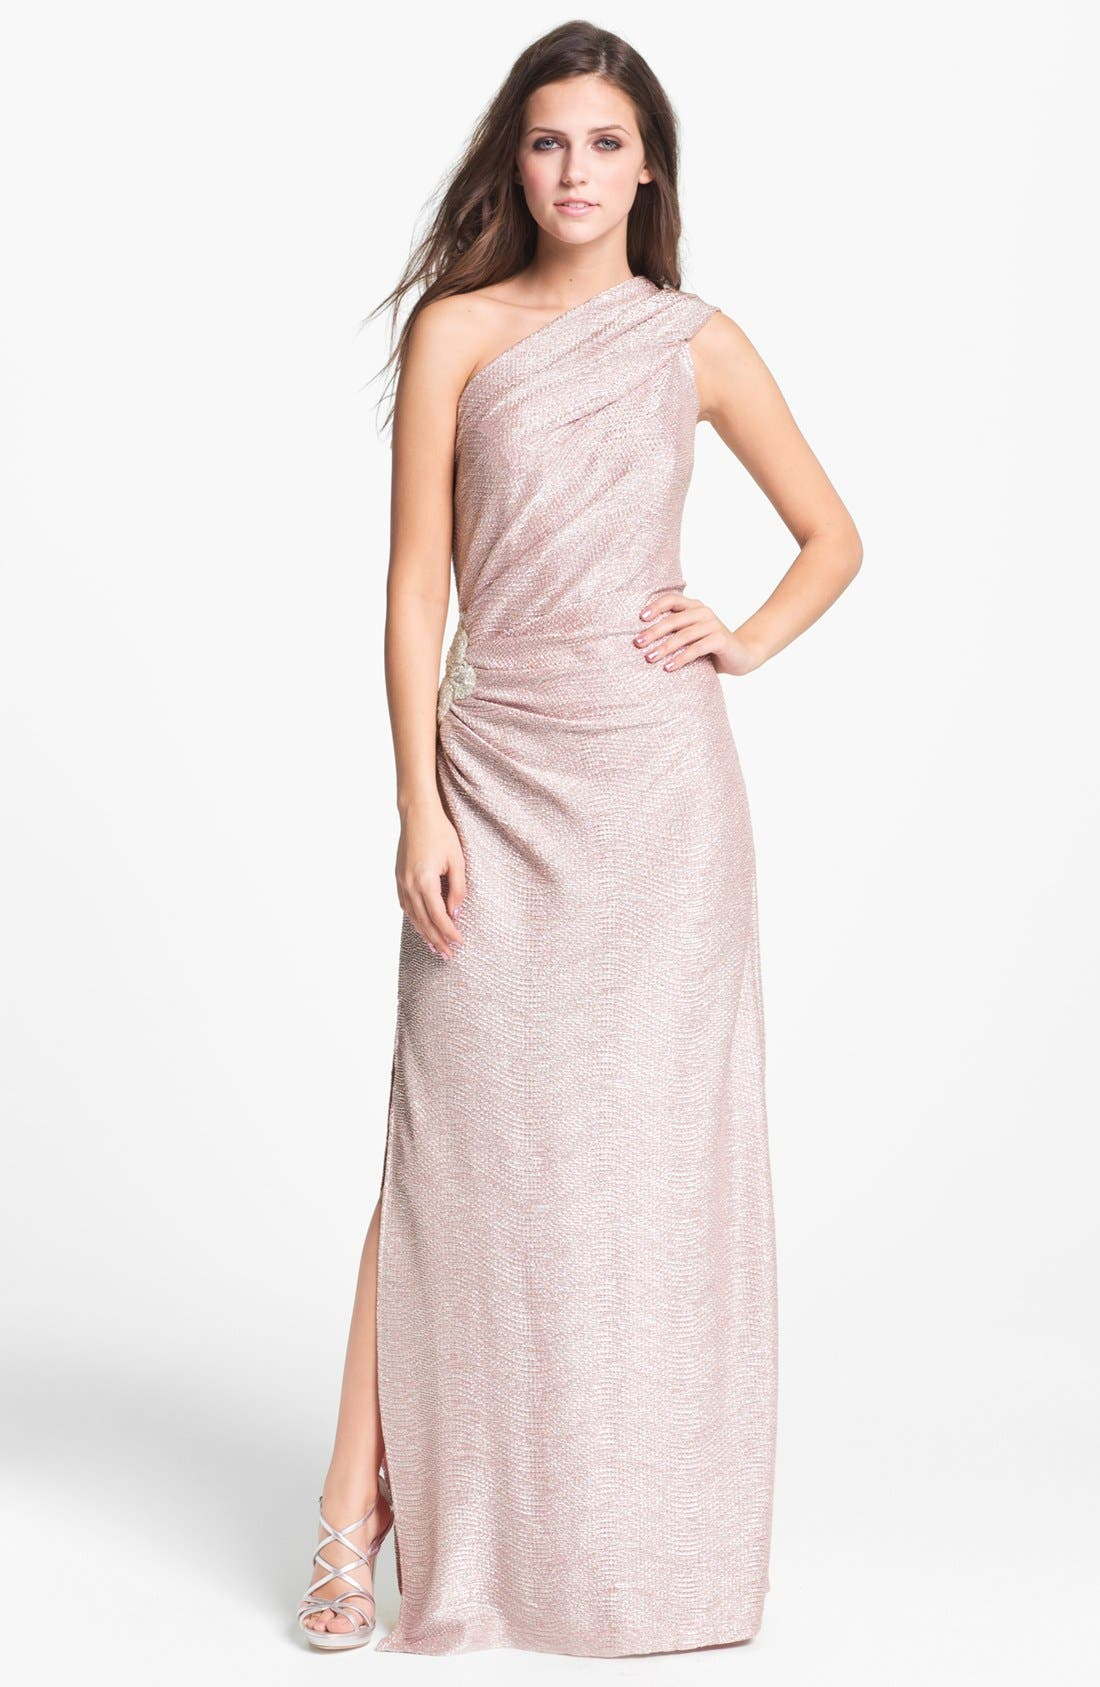 Alternate Image 1 Selected - Hailey by Adrianna Papell Metallic One Shoulder Gown (Online Only)